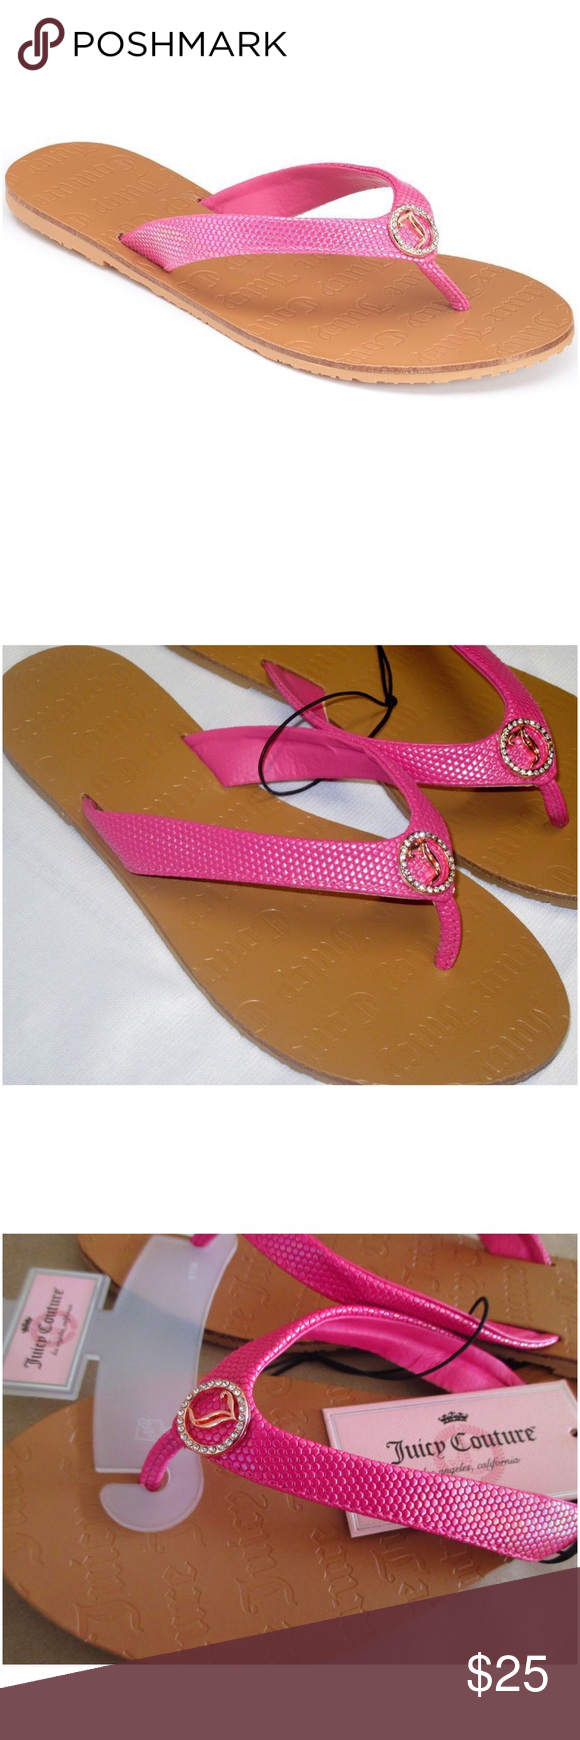 Juicy Couture Pink Rhinestone Thong Sandals Juicy Couture iridescent pink with rhinestone logo charm thong flip flop sandals will add pep to your step!    Sandals Feature Thong design, Logo on bottoms, rhinestone logo. Sandal Construction Faux-leather upper & lining TPR outsole Sandal Details Open toe Slip-on Padded footbed.    *ALSO AVAILABLE IN WHITE & BLACK IN SEPARATE LISTING TO BUY & BUNDLE!  *M (7-8)  CLOSET RULES: Bundle Discounts * No Trades * Smoke free Juicy Couture Shoes Sandals